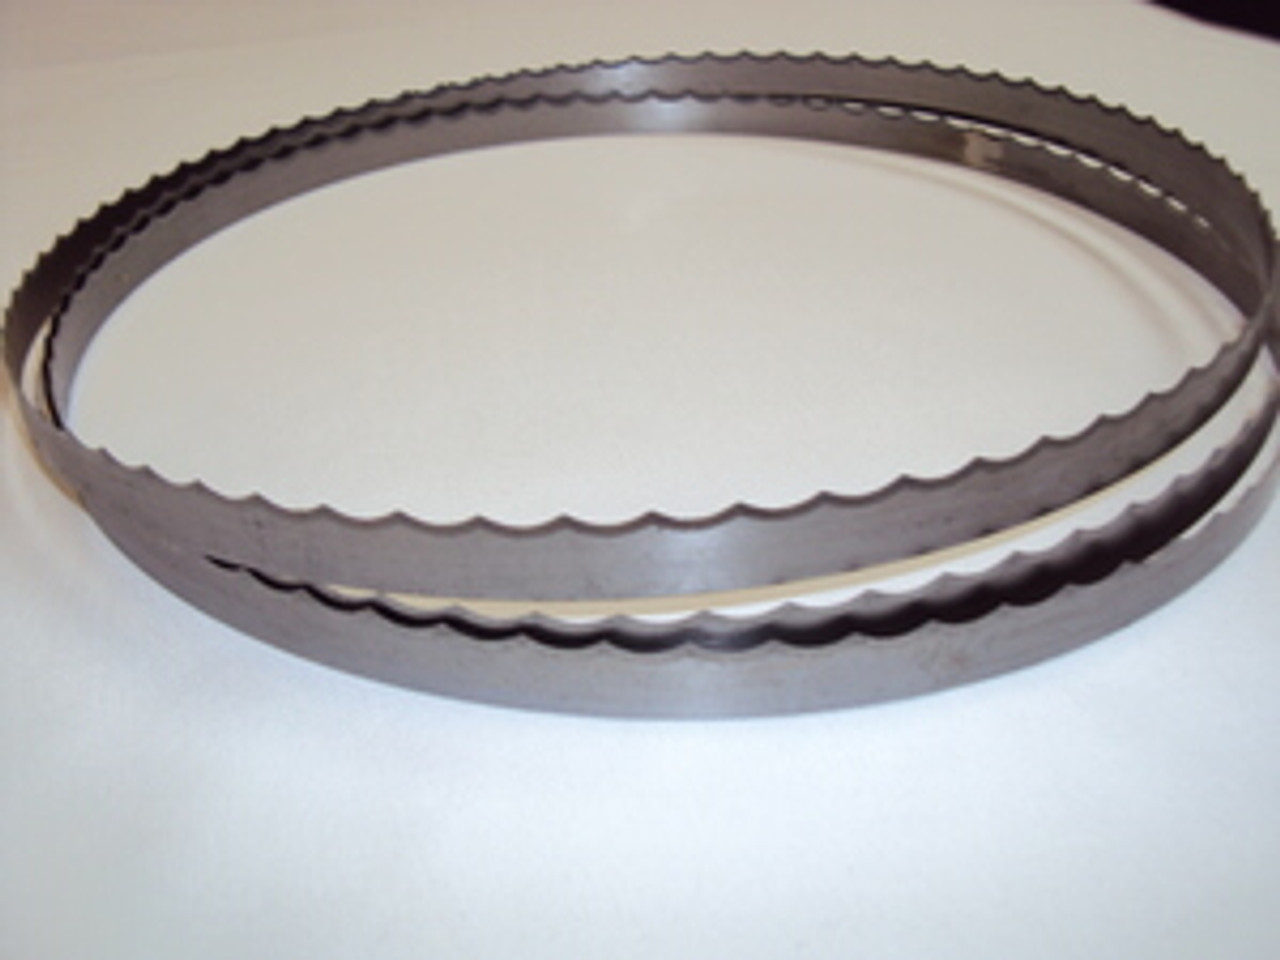 112 x 5/8 x 022  Scallop Edge, Boneless Band Saw Blade